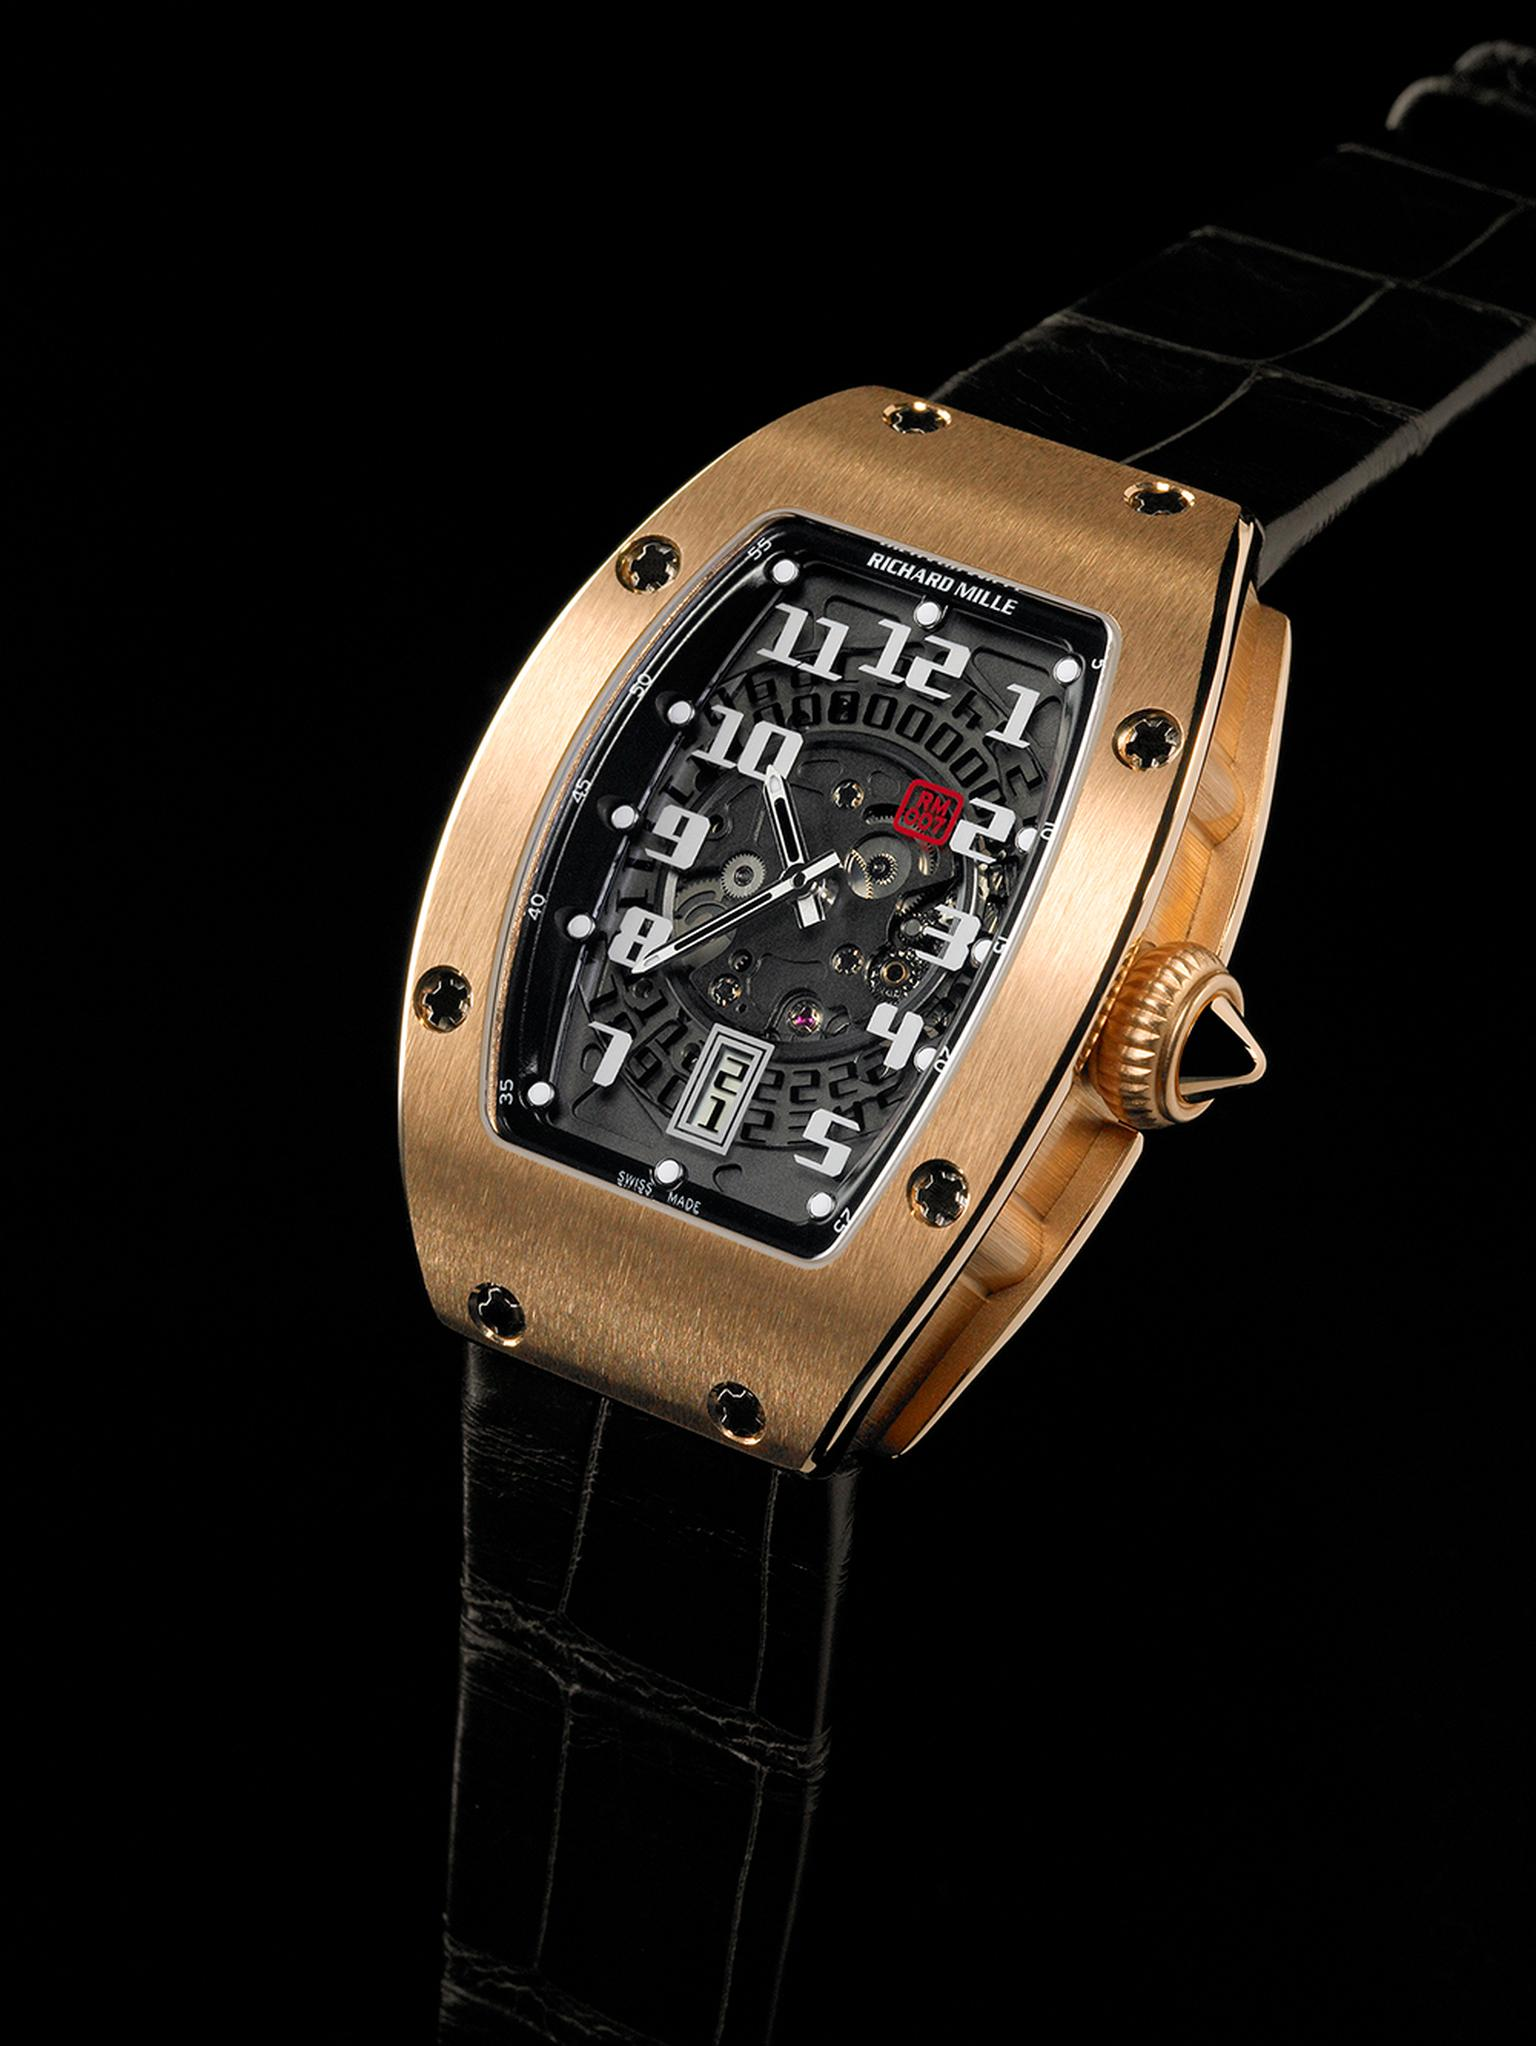 RichardMille0072.jpg